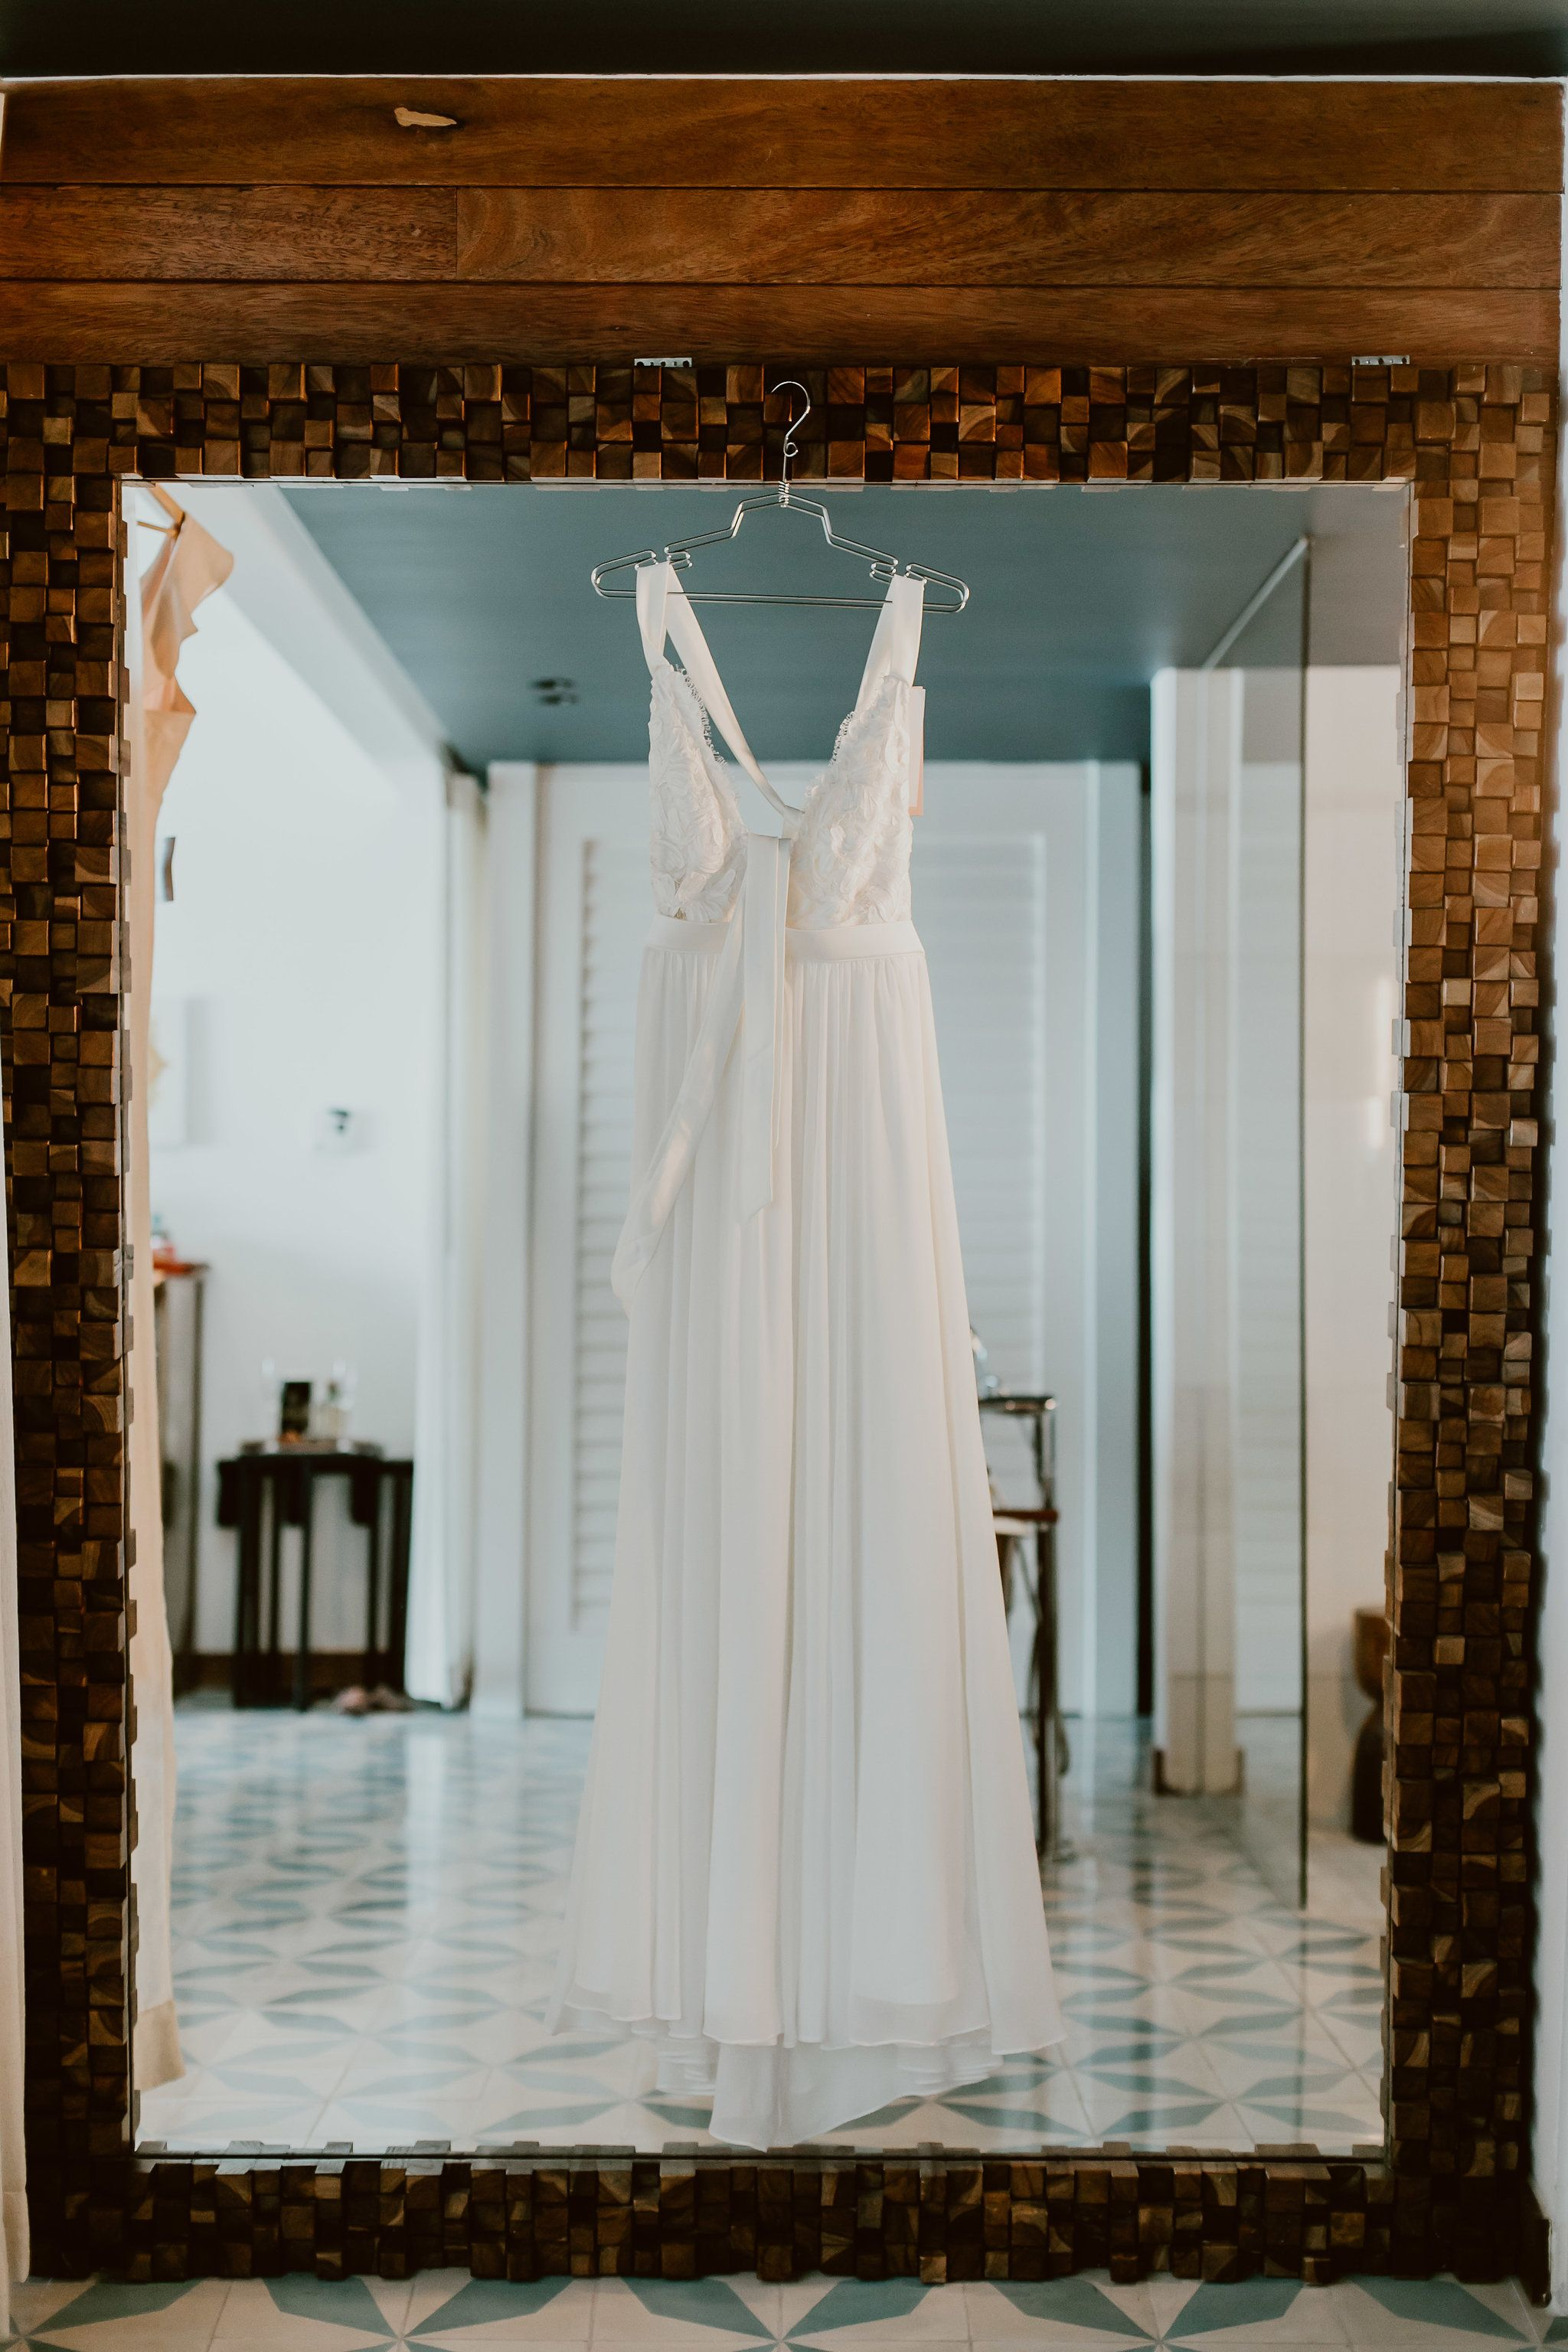 Brides dress hung at The Capes hotel room in Los Cabos Mexico